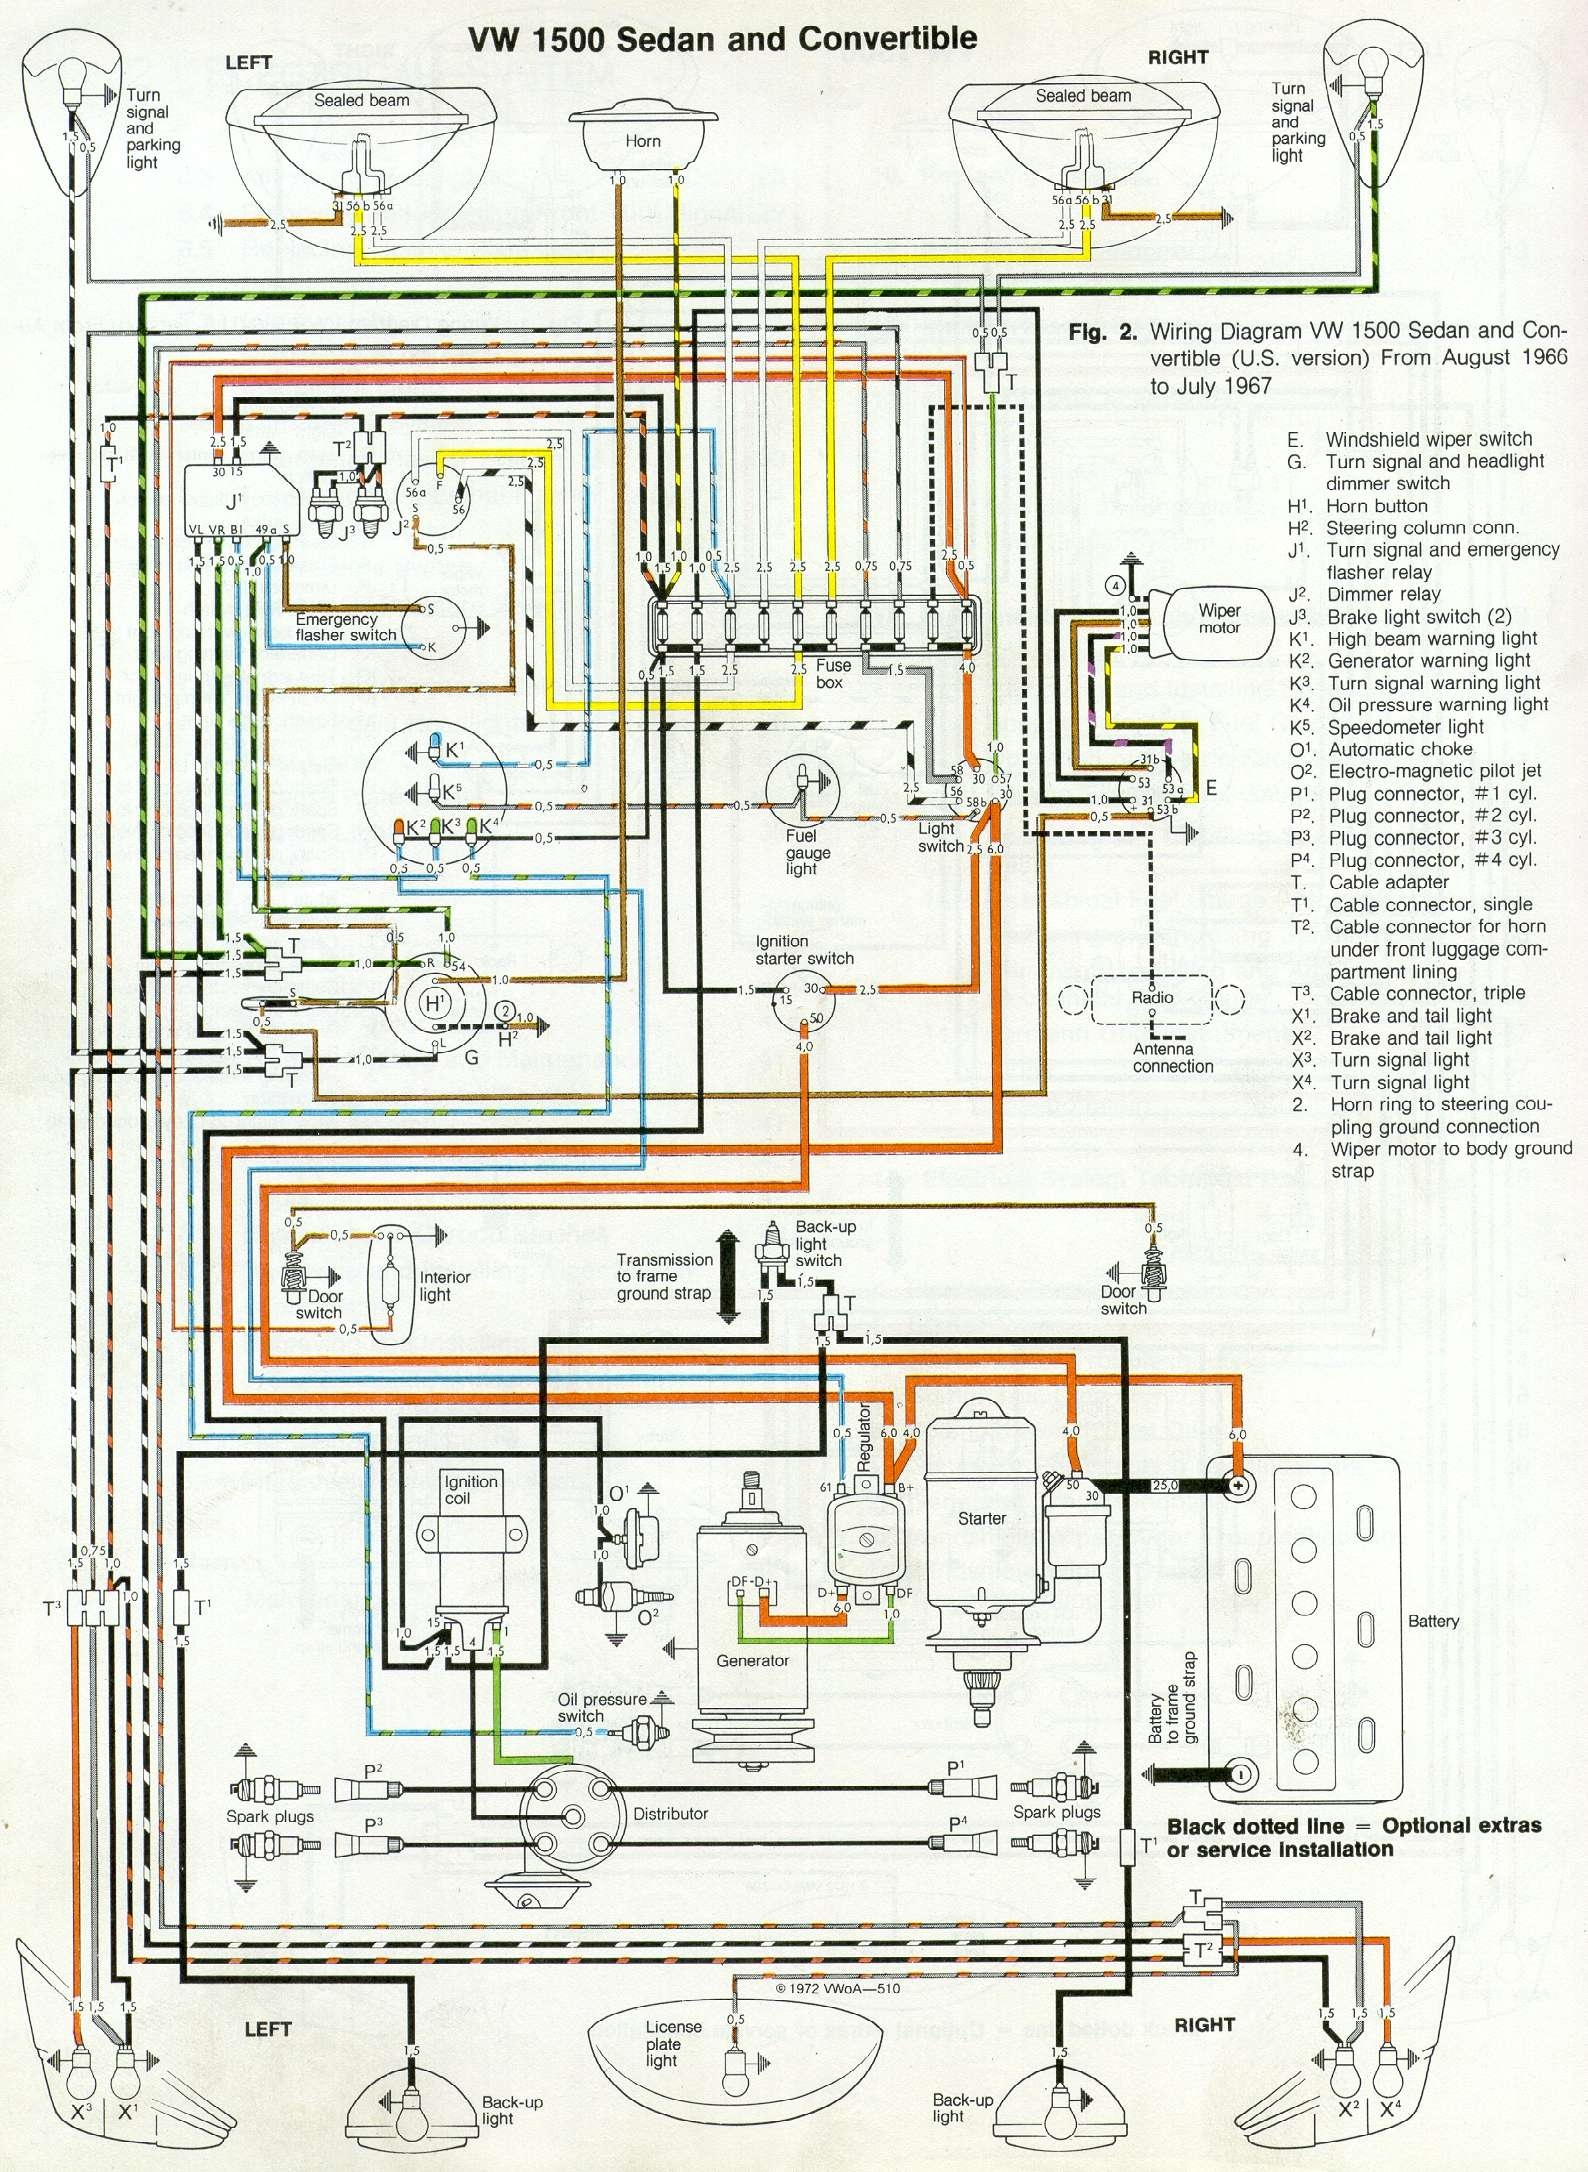 1963 Vw Beetle Wiper Motor Wiring Diagram Electrical Diagrams 1966 Easy U2022 Voltage Regulator